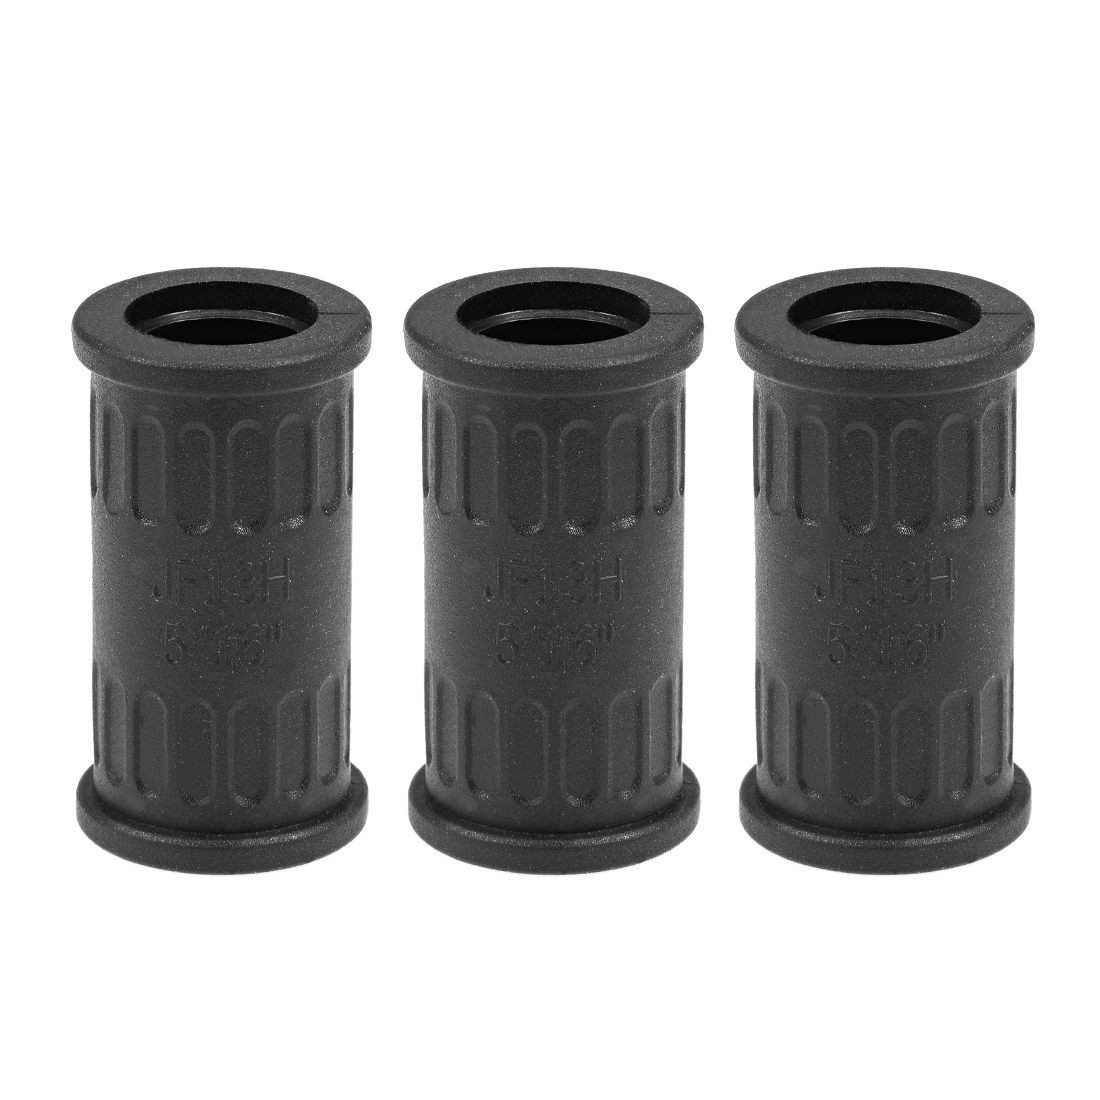 Cable Gland Corrugated Tube Connector AD13 Pipe Joint Clamps 3Pcs